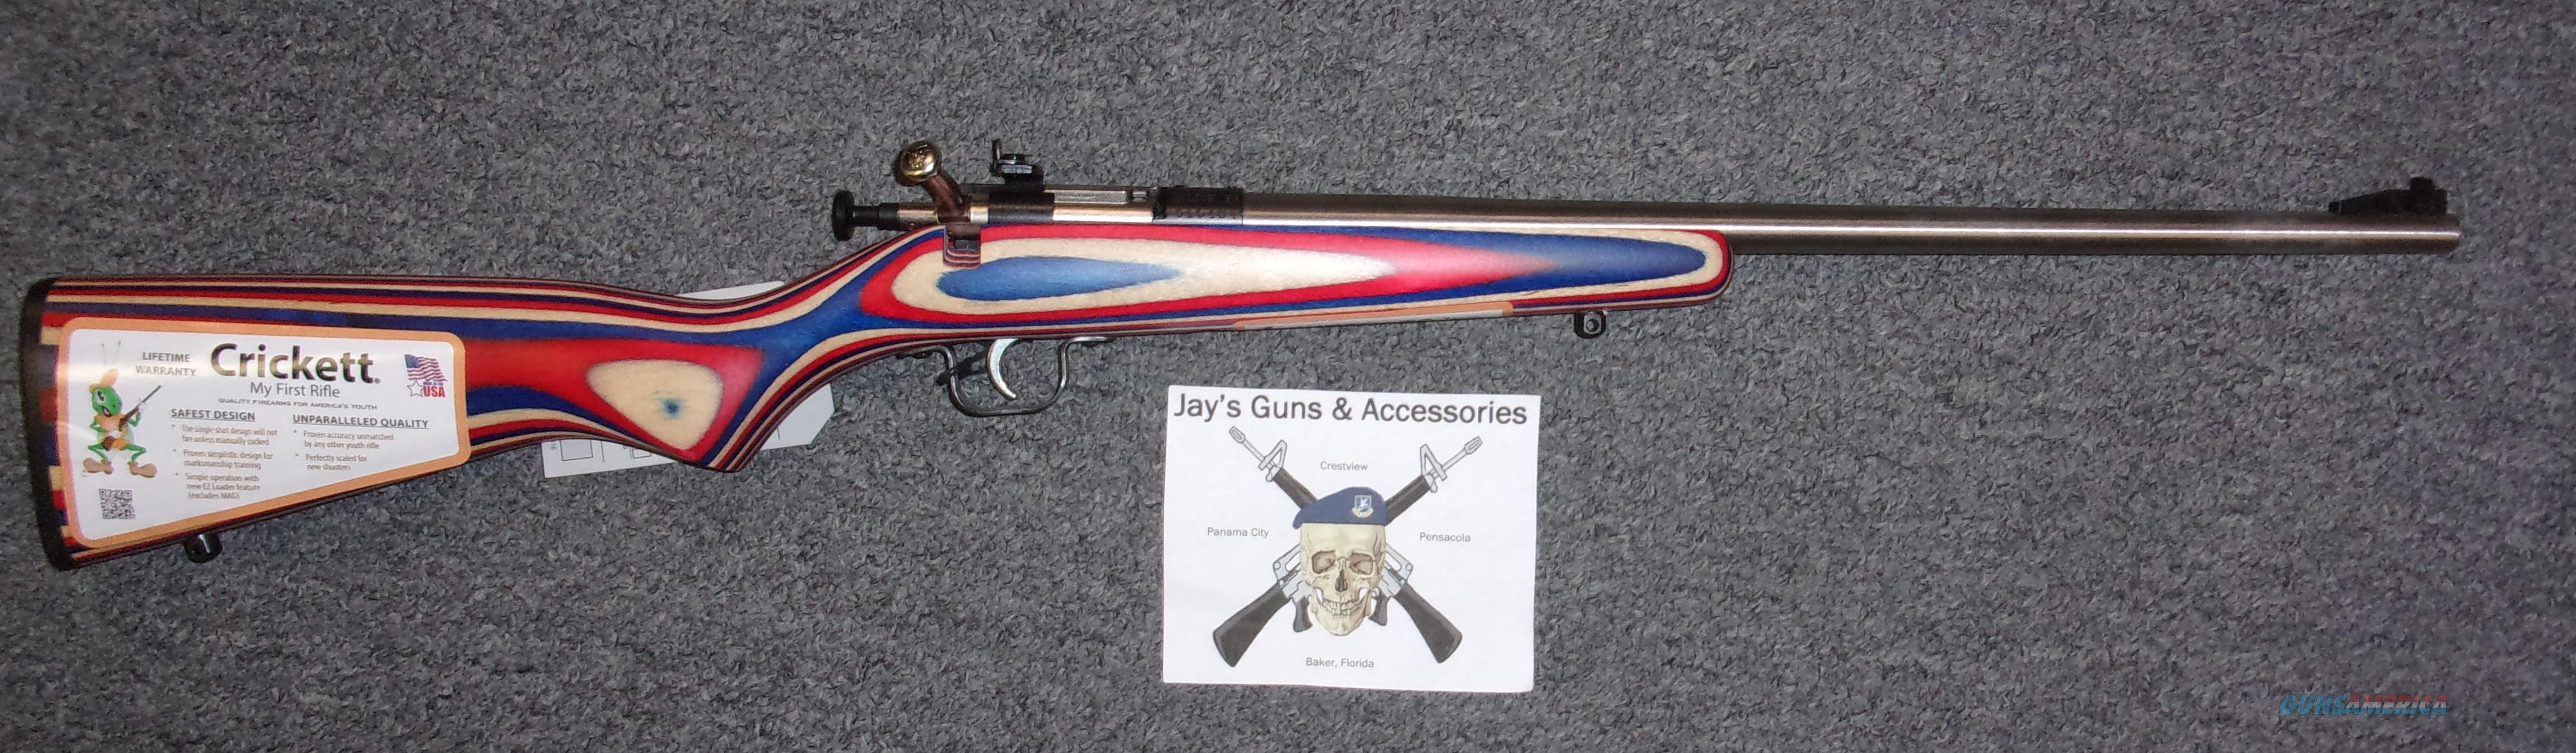 Keystone Arms Crickett w/Red, White & Blue Laminated Stock  Guns > Rifles > Crickett-Keystone Rifles